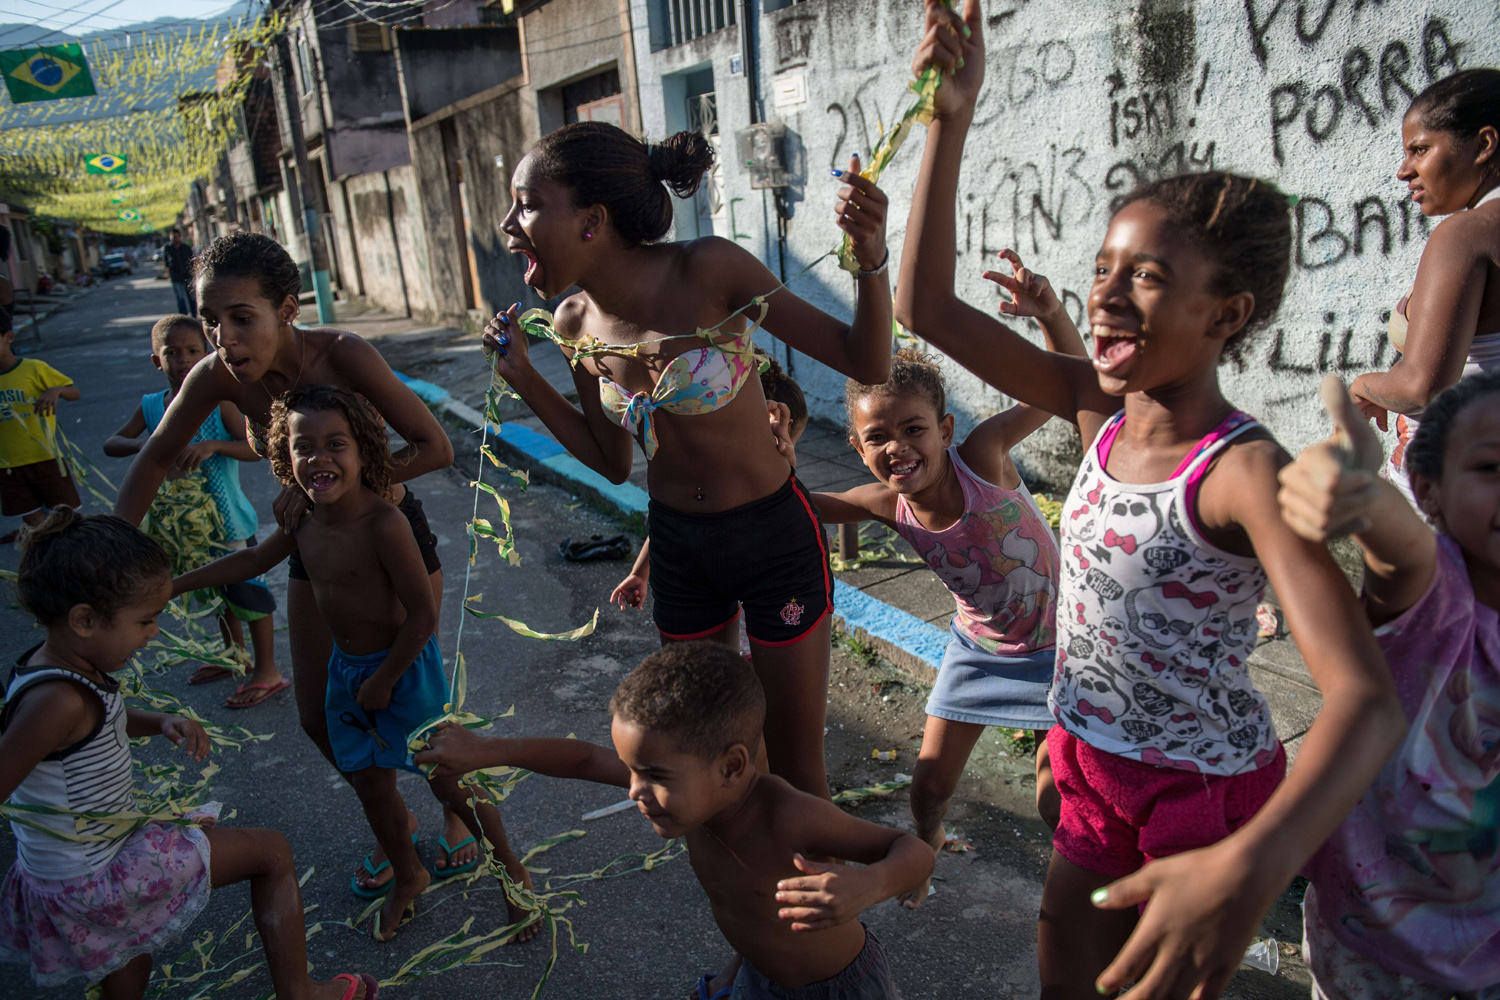 Jun. 11, 2014. Girls help to decorate a street for the FIFA World Cup 2014 in Rio de Janeiro, Brazil, on on the eve of the opening of the event.